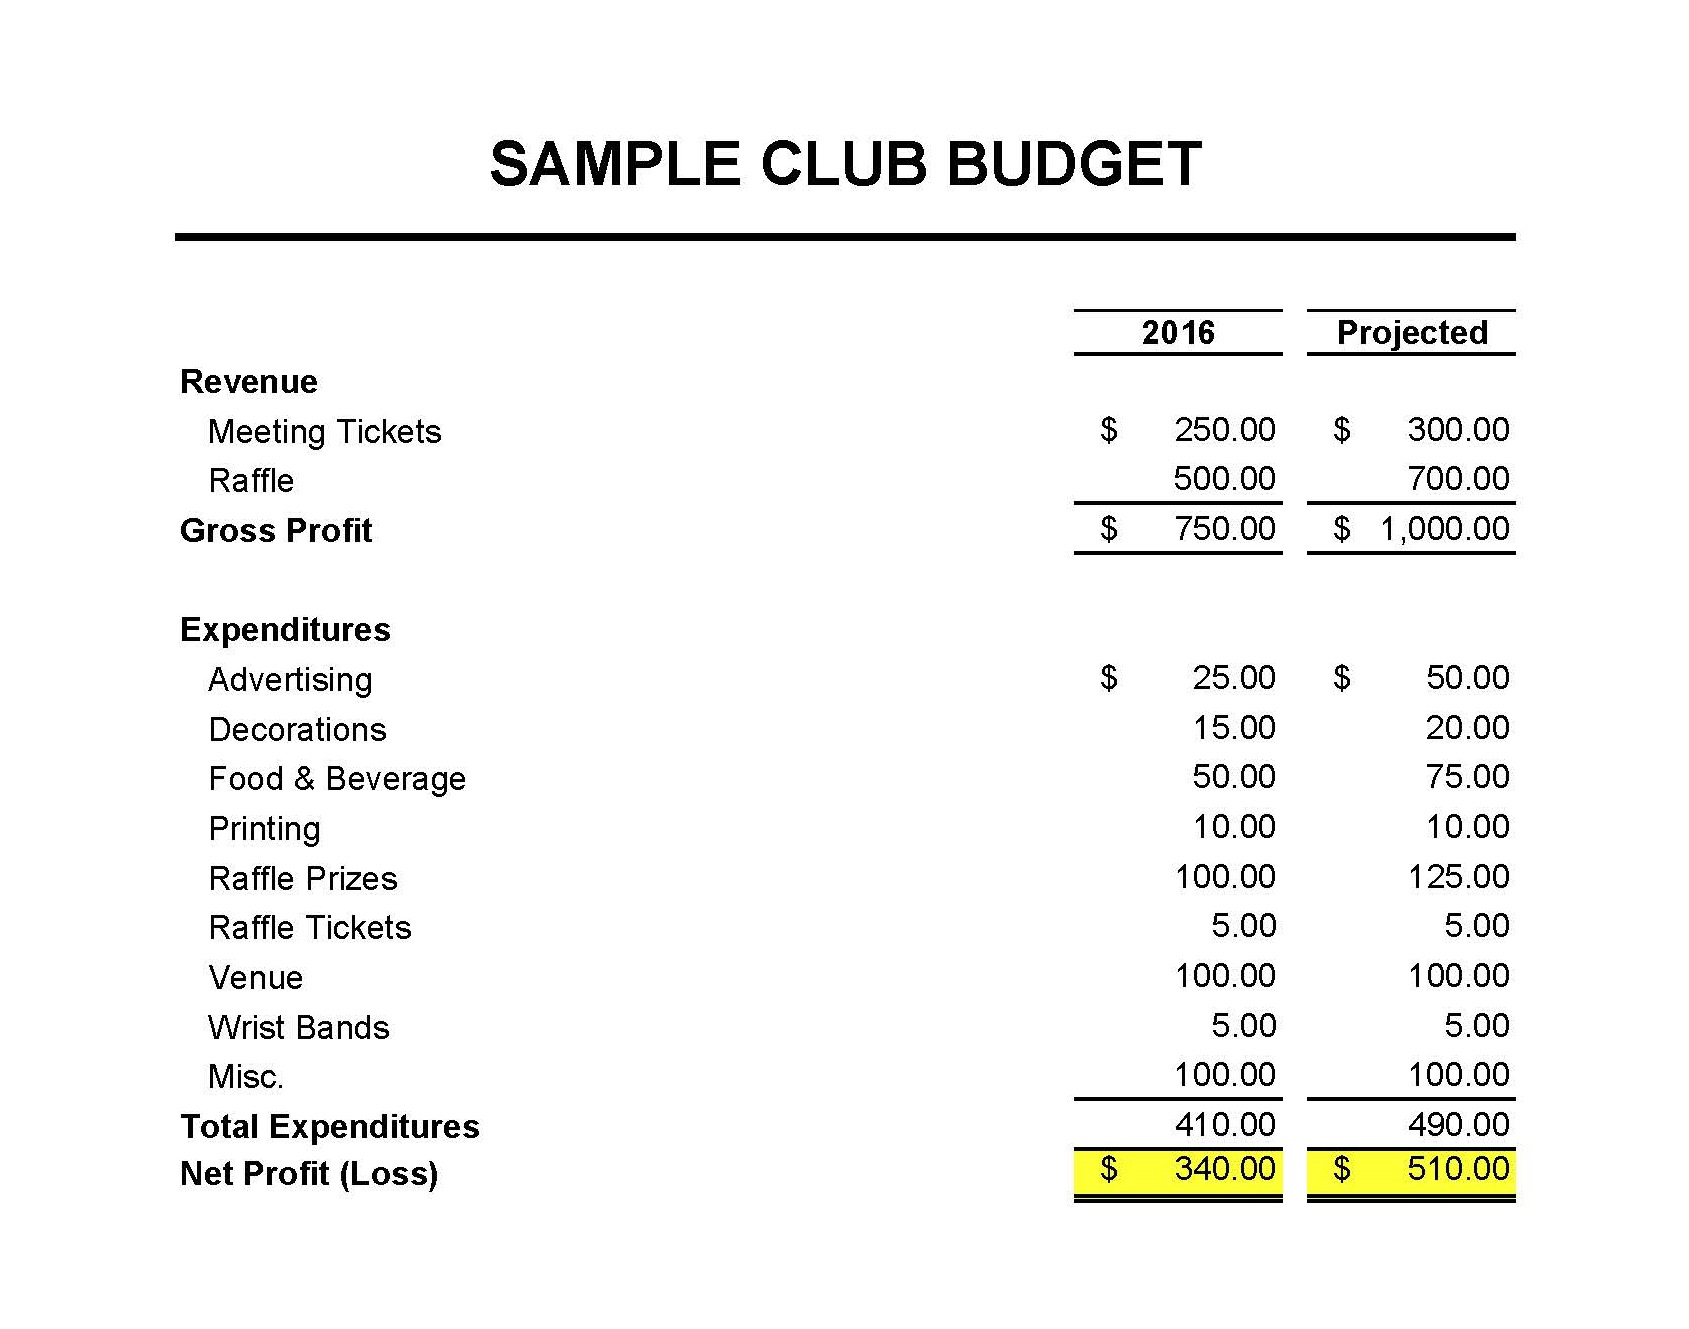 MASNA » Club Accounting 101